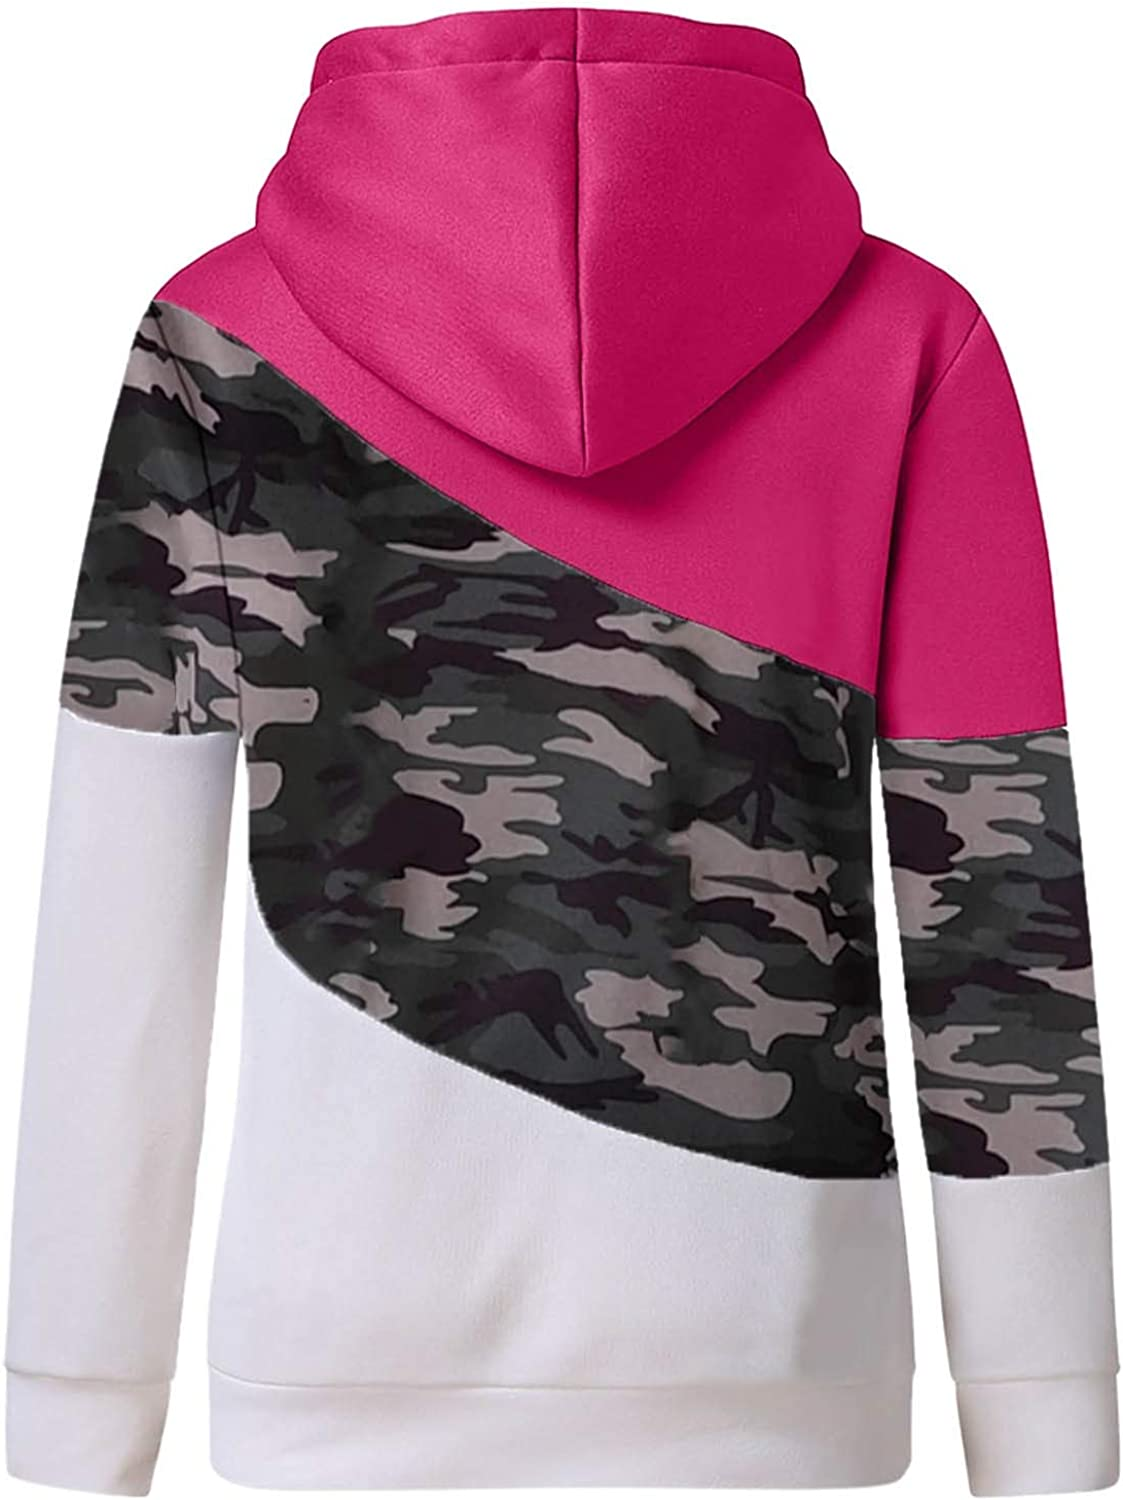 Hotkey Hoodies for Women Cowl Neck Long Sleeve Hooded Sweatshirts Camouflage Print Color Block Pullover Jumper Tops Blouse